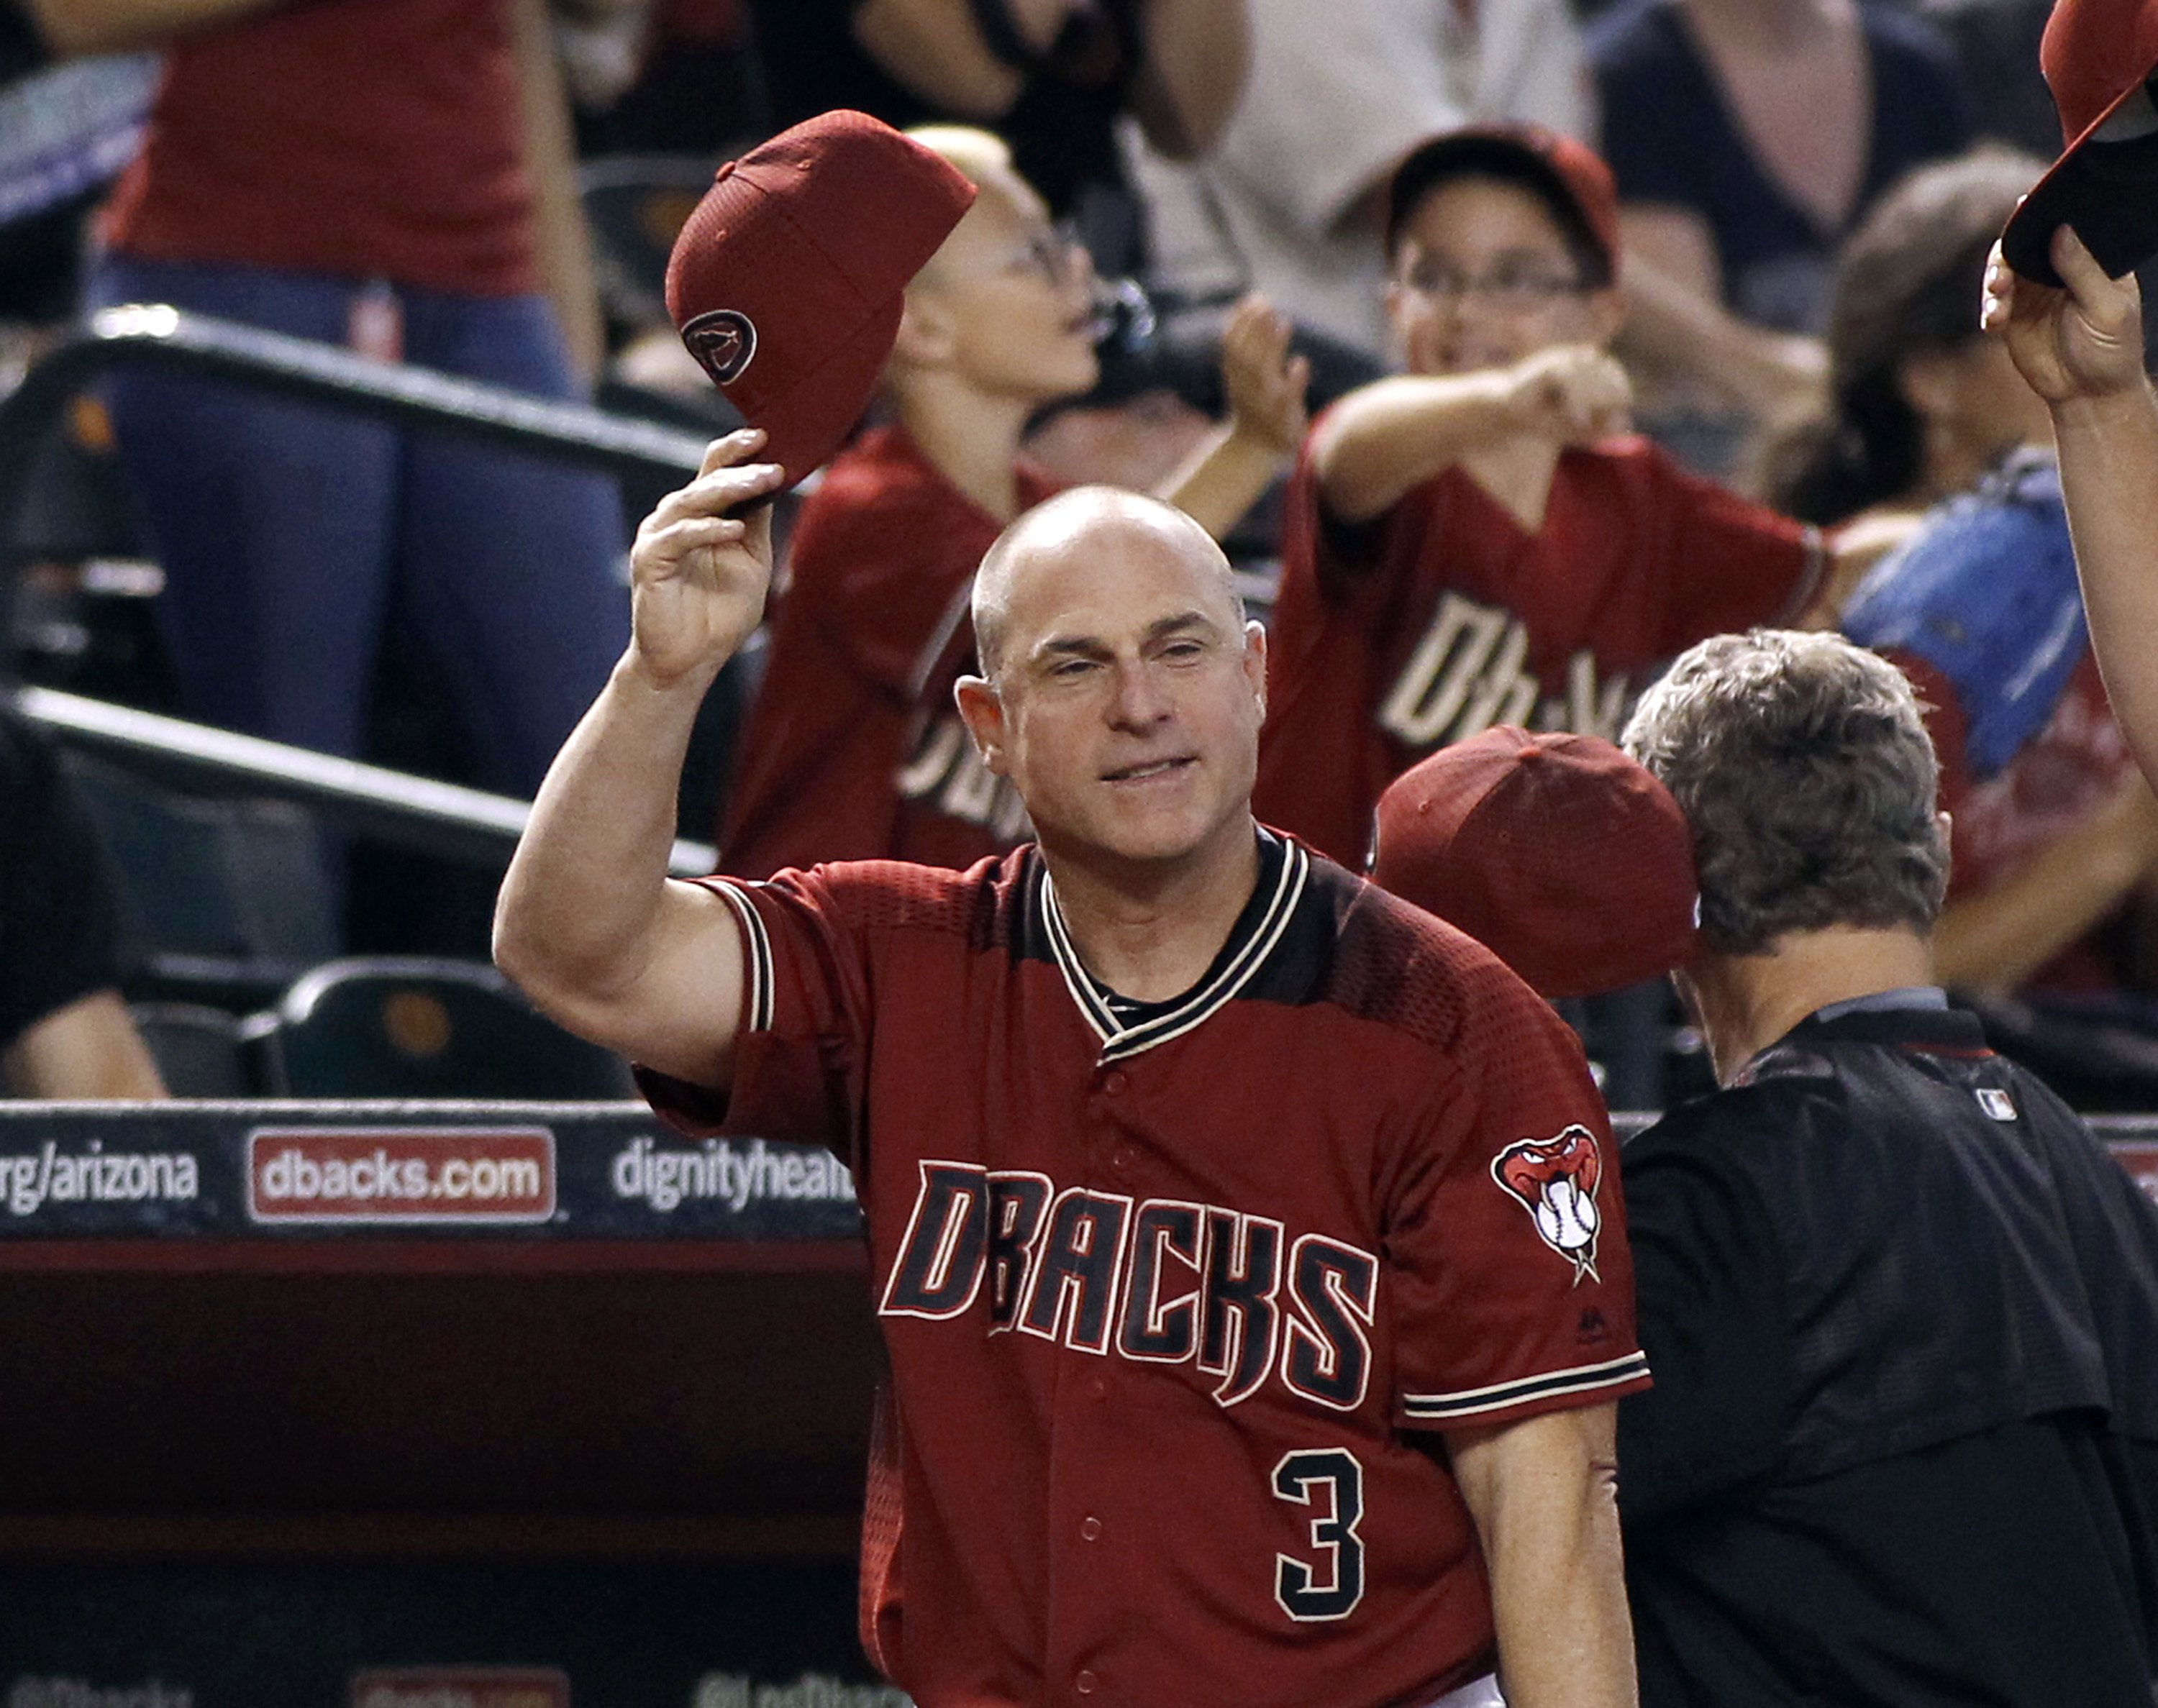 Arizona Diamondbacks manager Chip Hale salutes the fans for their support during the season during the middle of the sixth inning of a baseball game against the San Diego Padres, Sunday, Oct. 2, 2016, in Phoenix. (AP Photo/Ralph Freso)